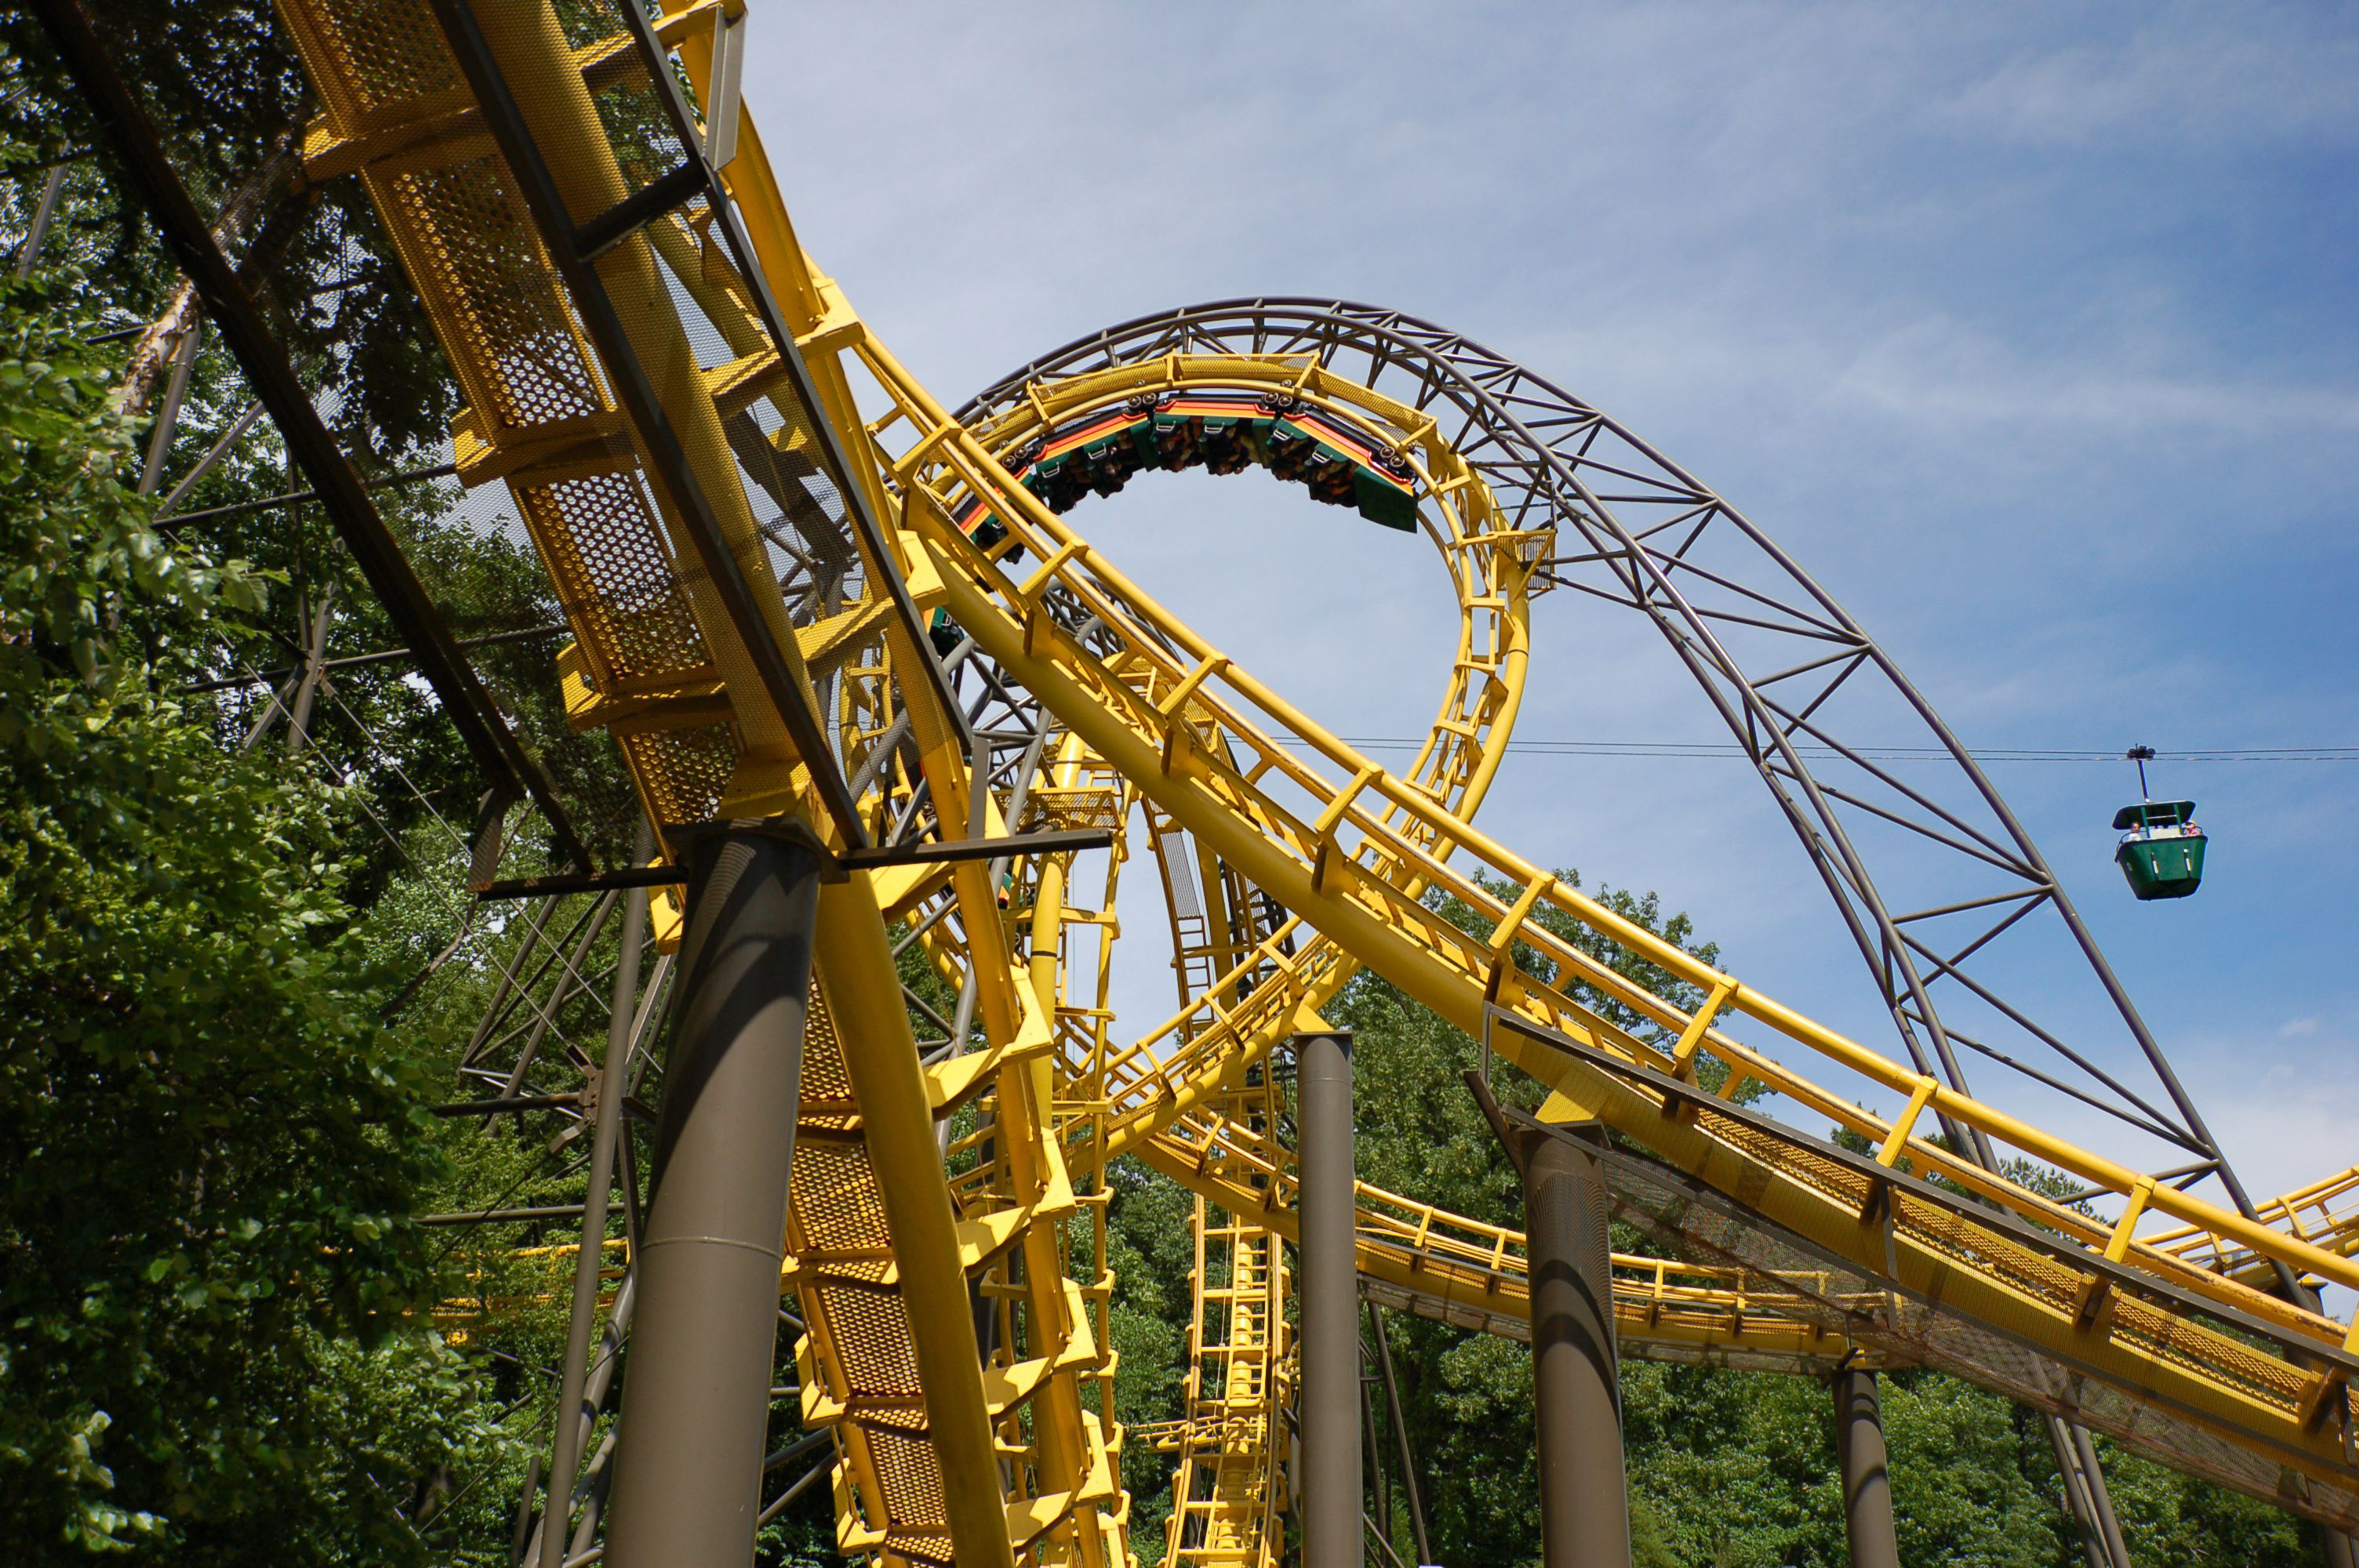 Close up of a roller coaster track